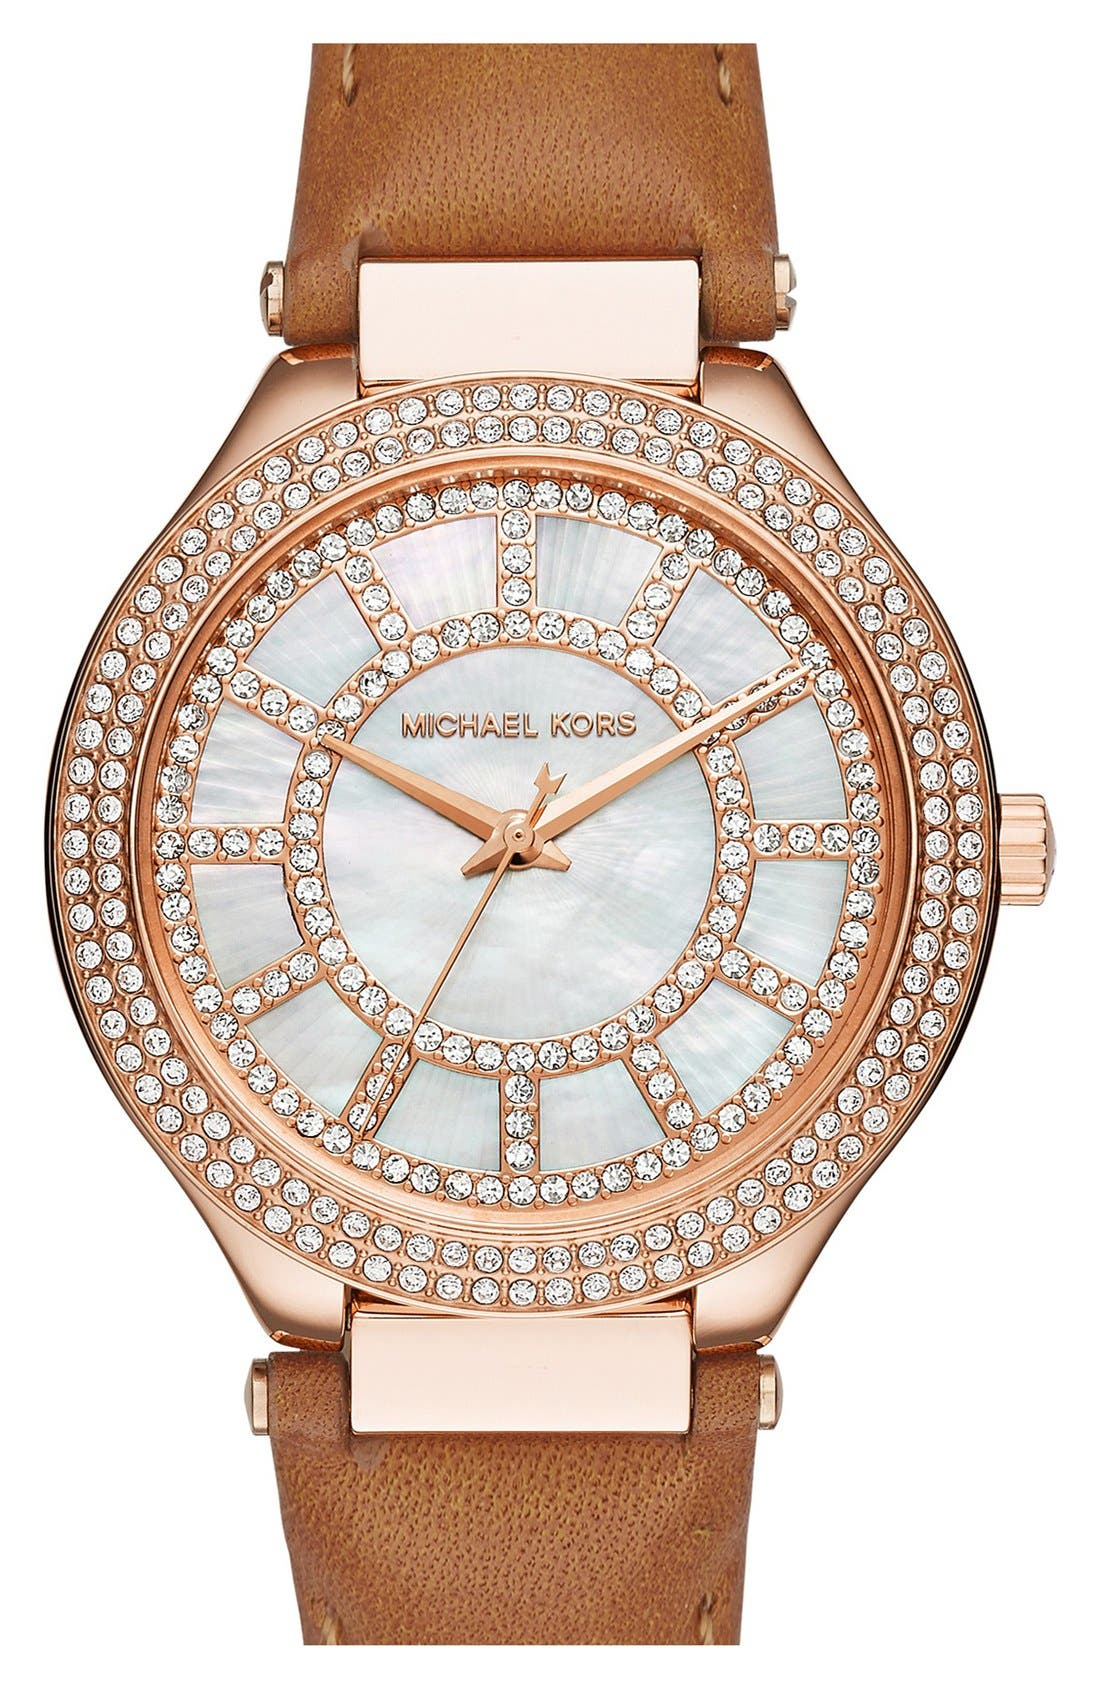 Alternate Image 1 Selected - Michael Kors 'Kerry' Crystal Accent Leather Strap Watch, 38mm